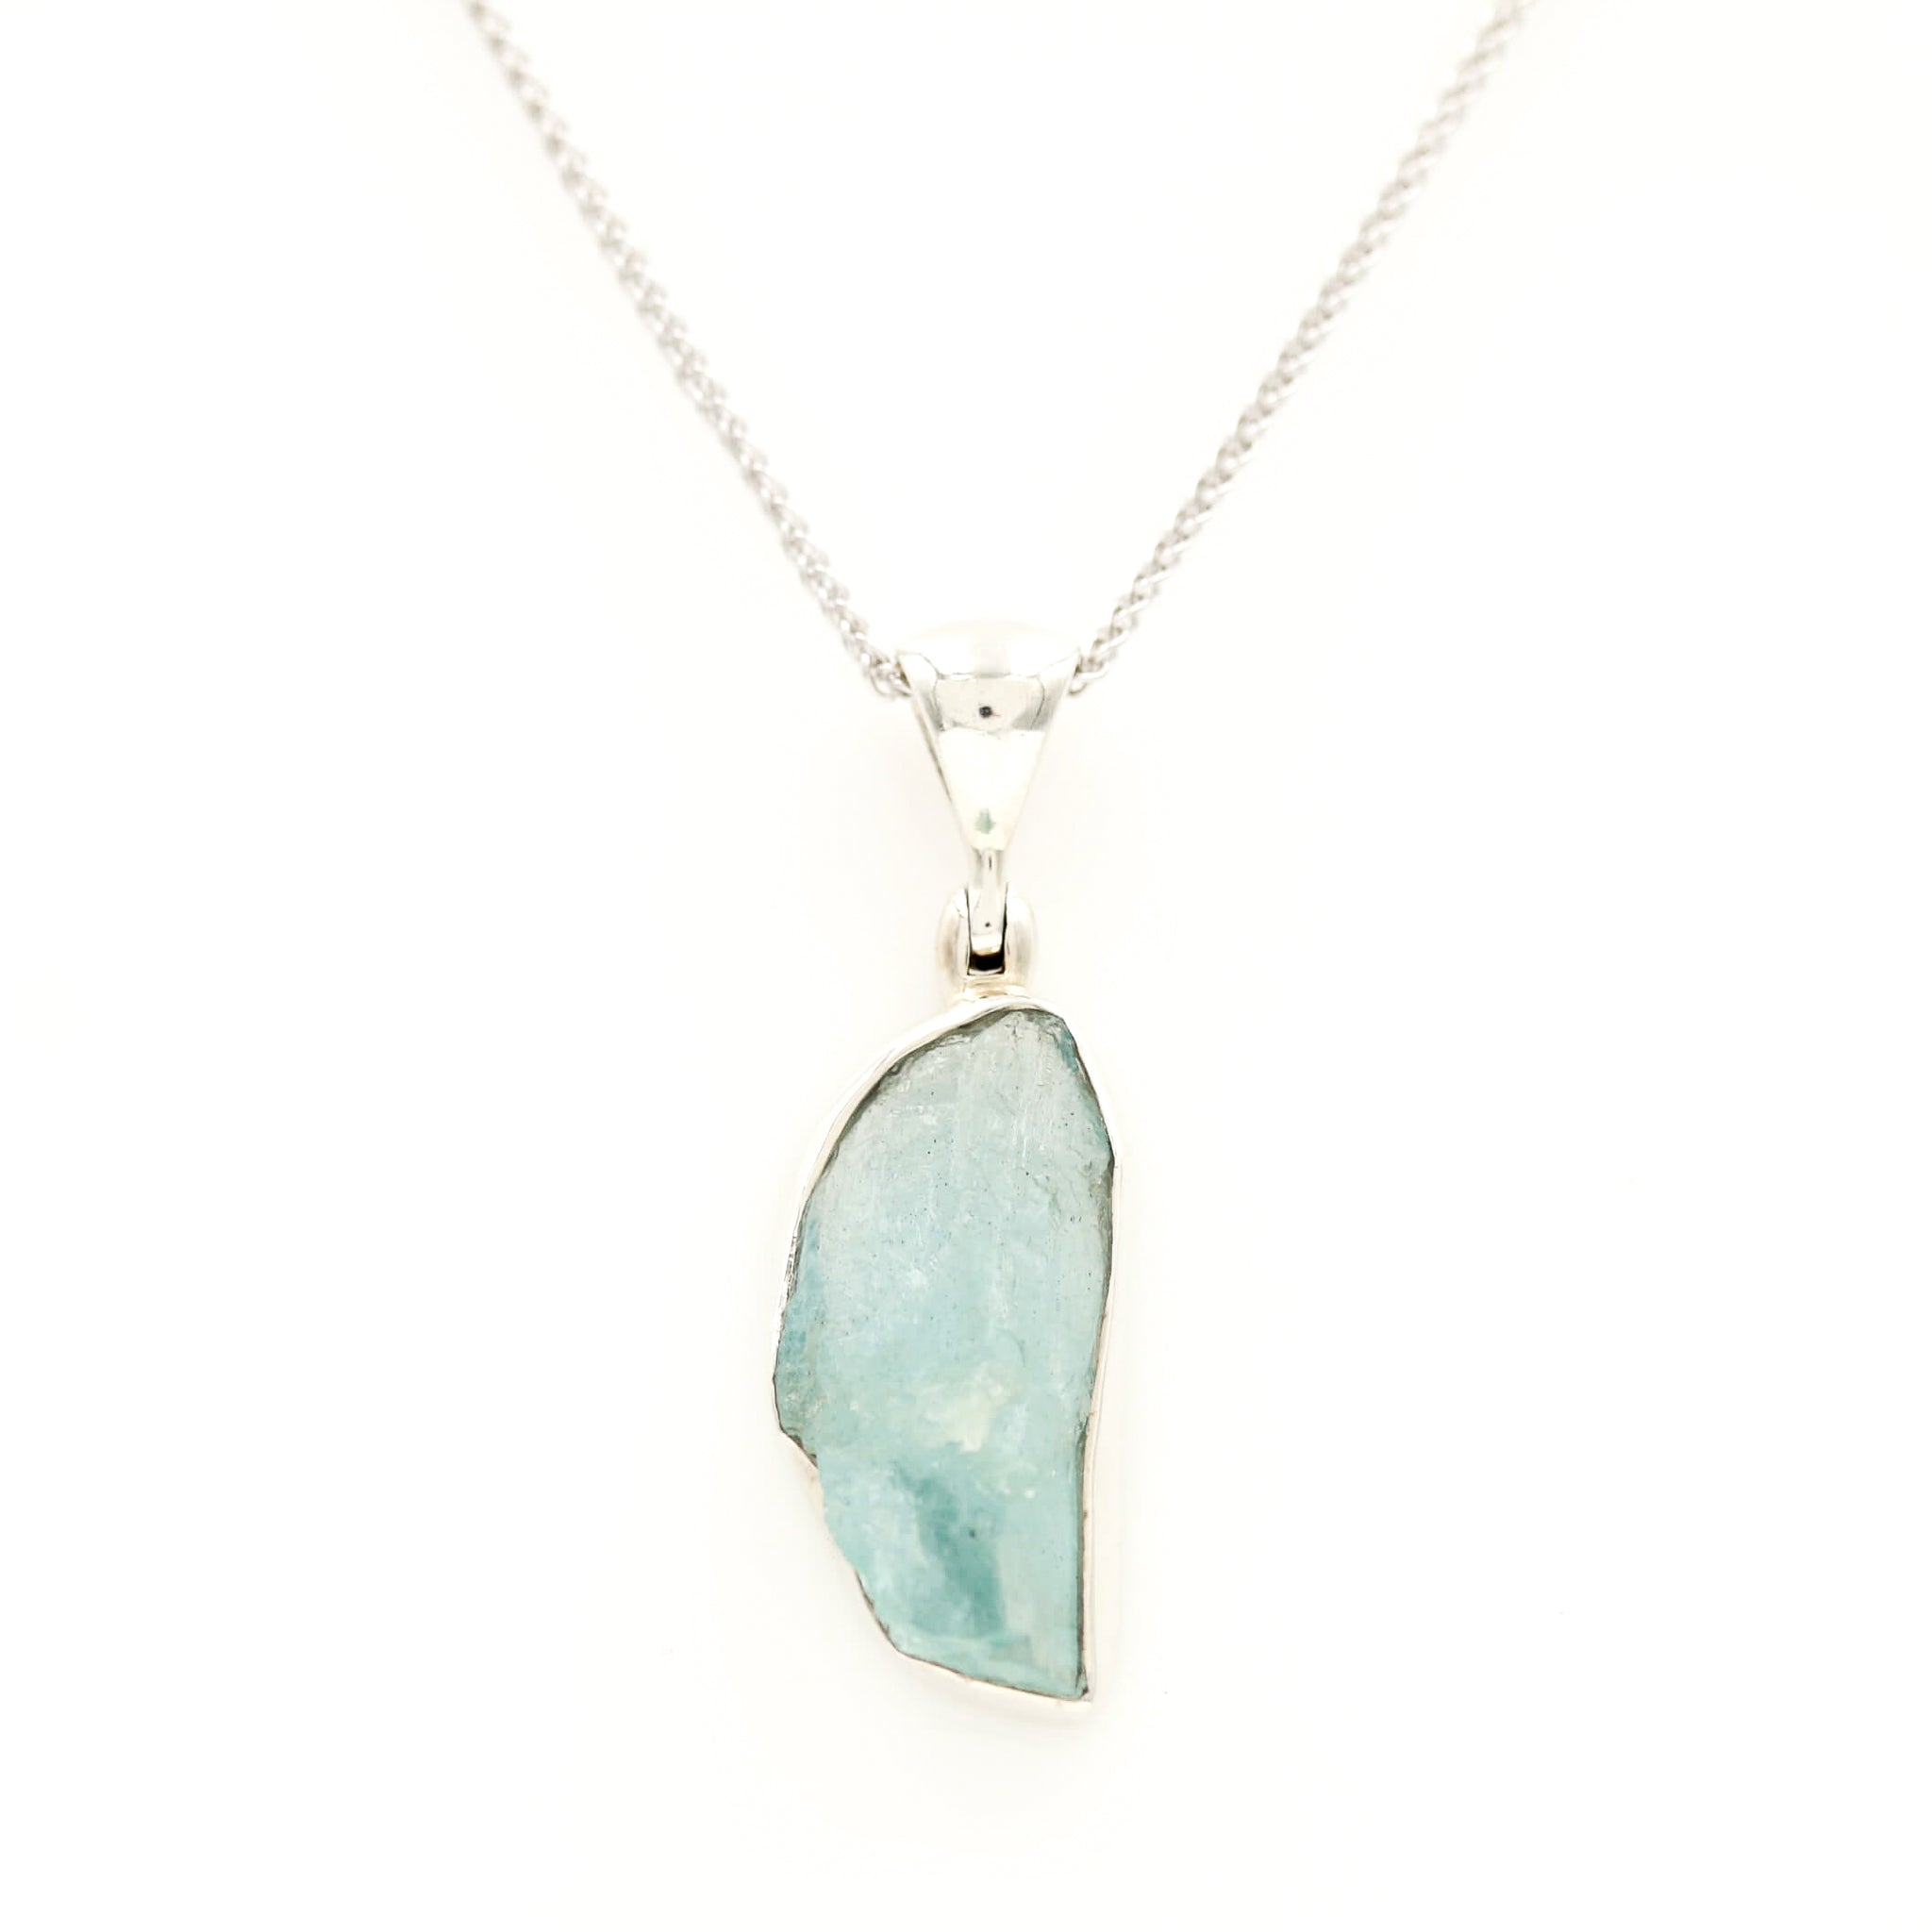 Organic Aquamarine in Sterling Silver Necklace - Sindur Style